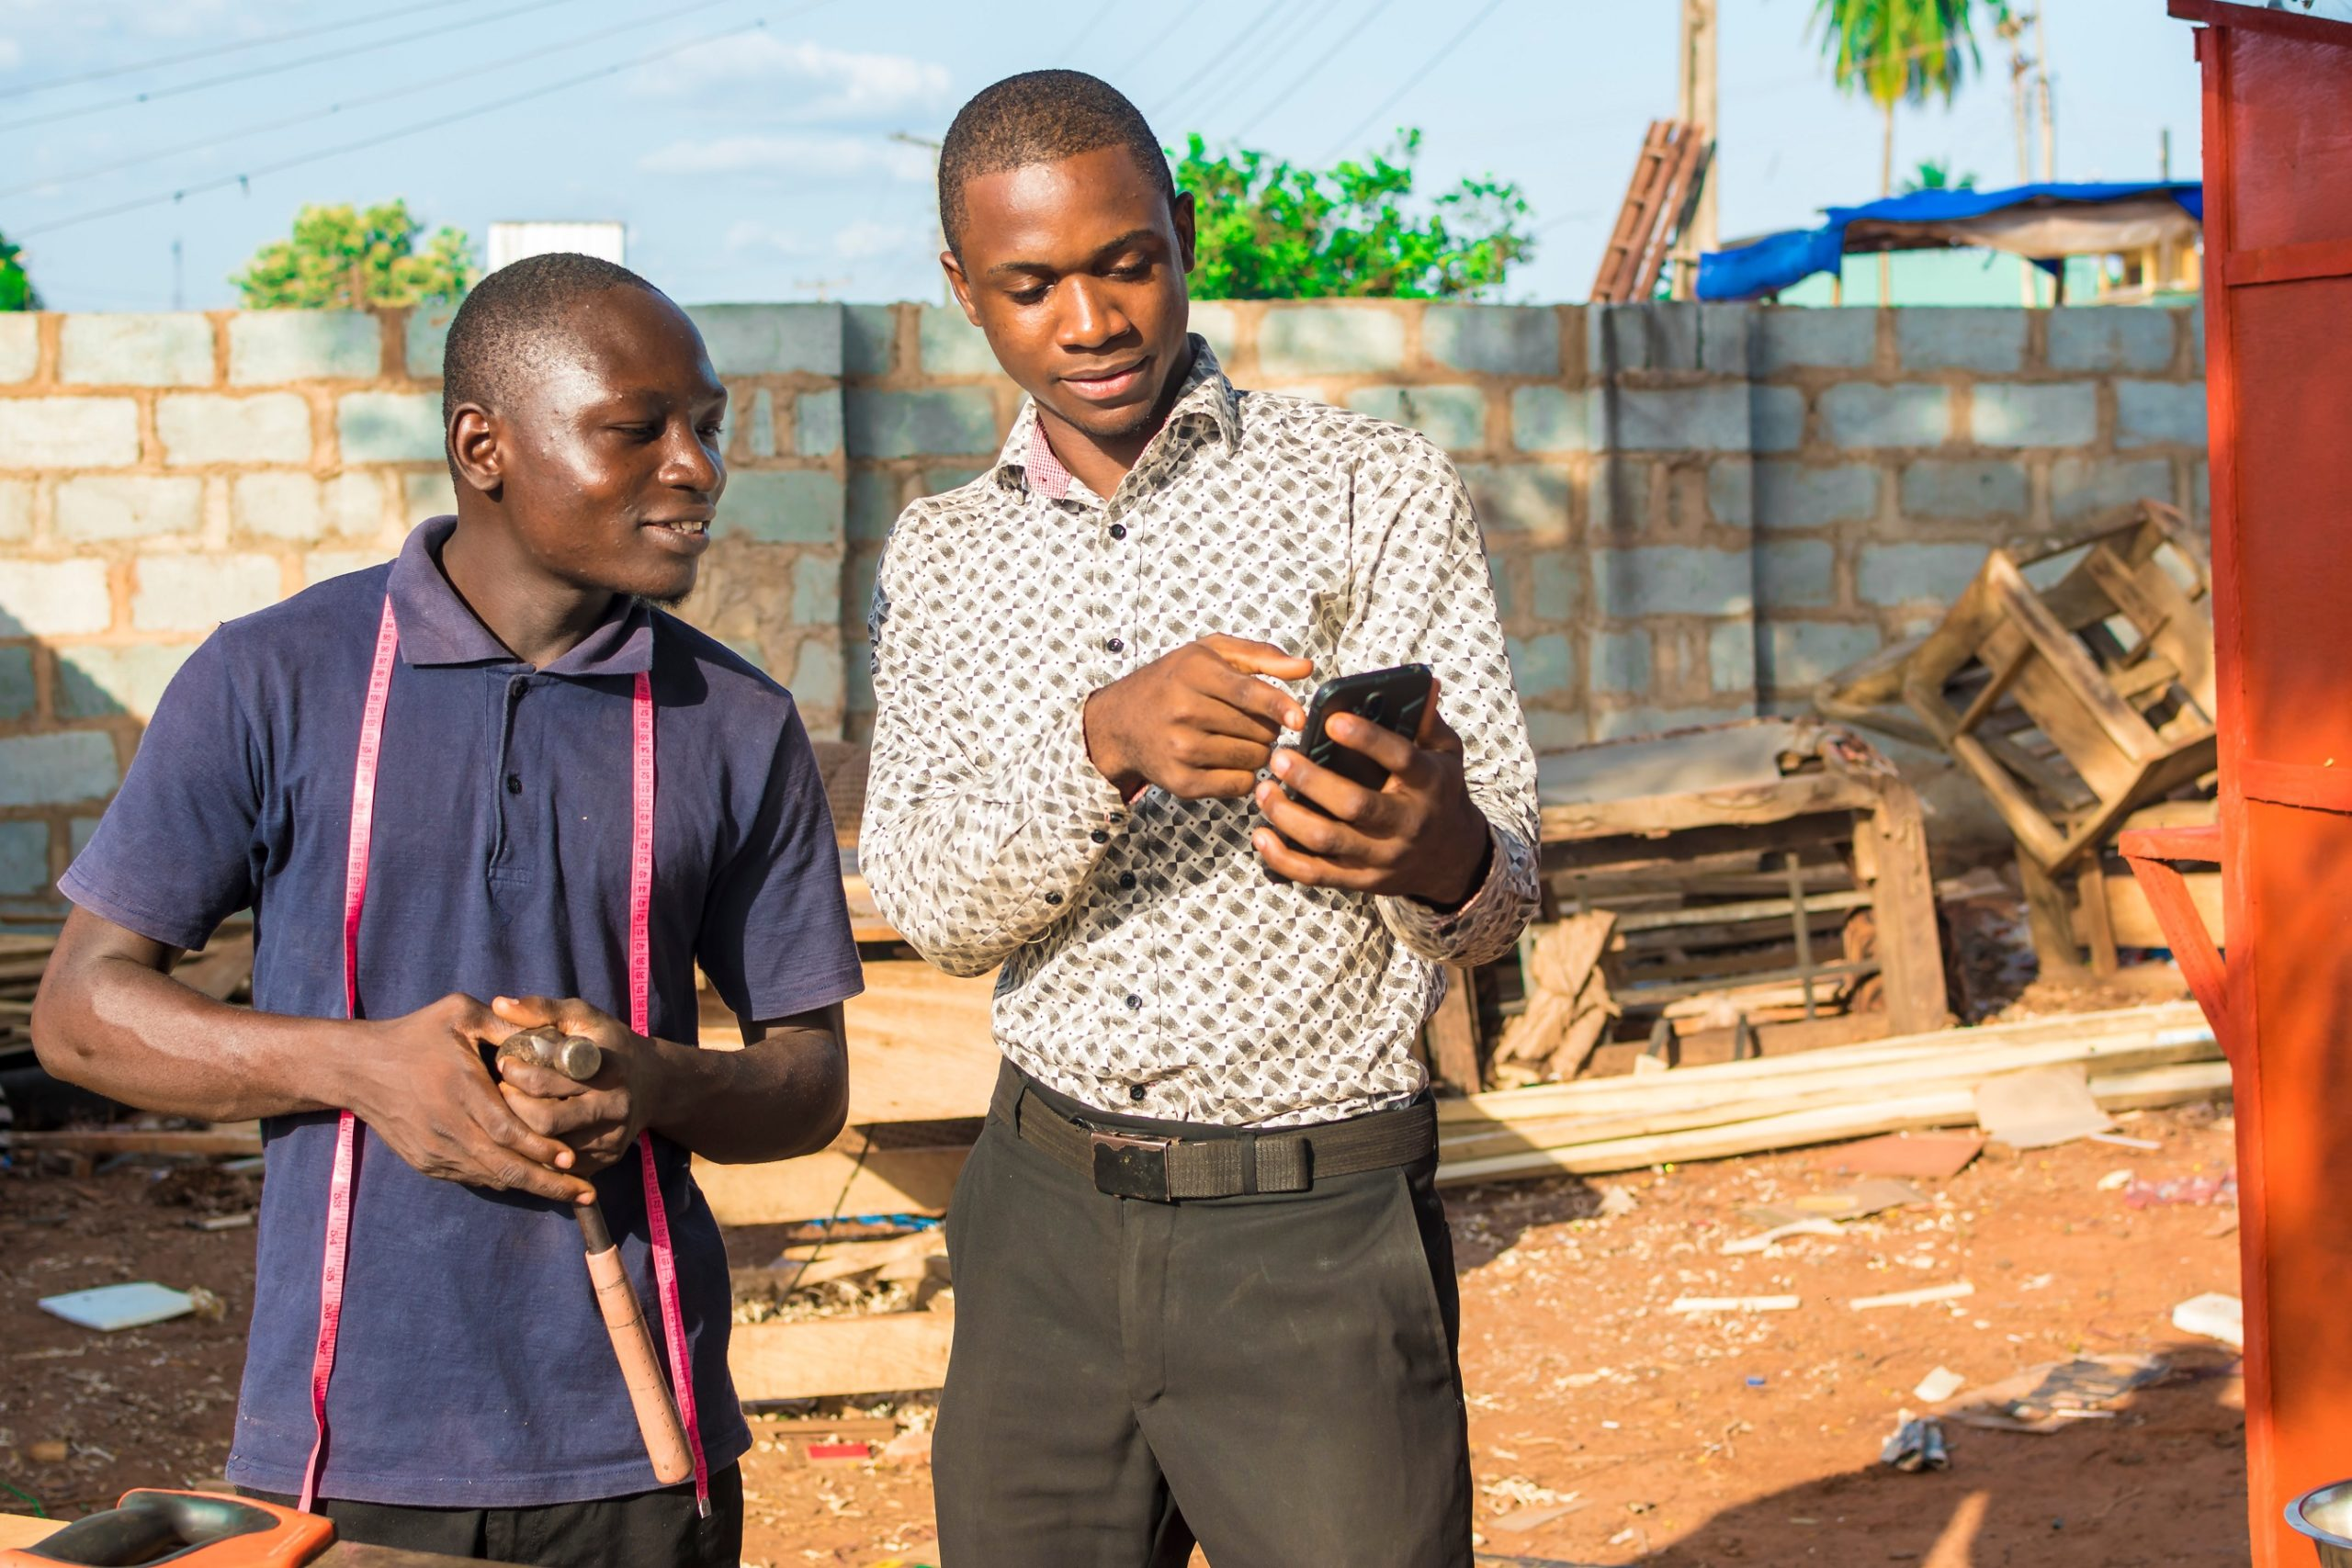 Mastercard Finds Out What Is Driving New Wave of Digital and Financial Inclusion Across Africa - Newslibre